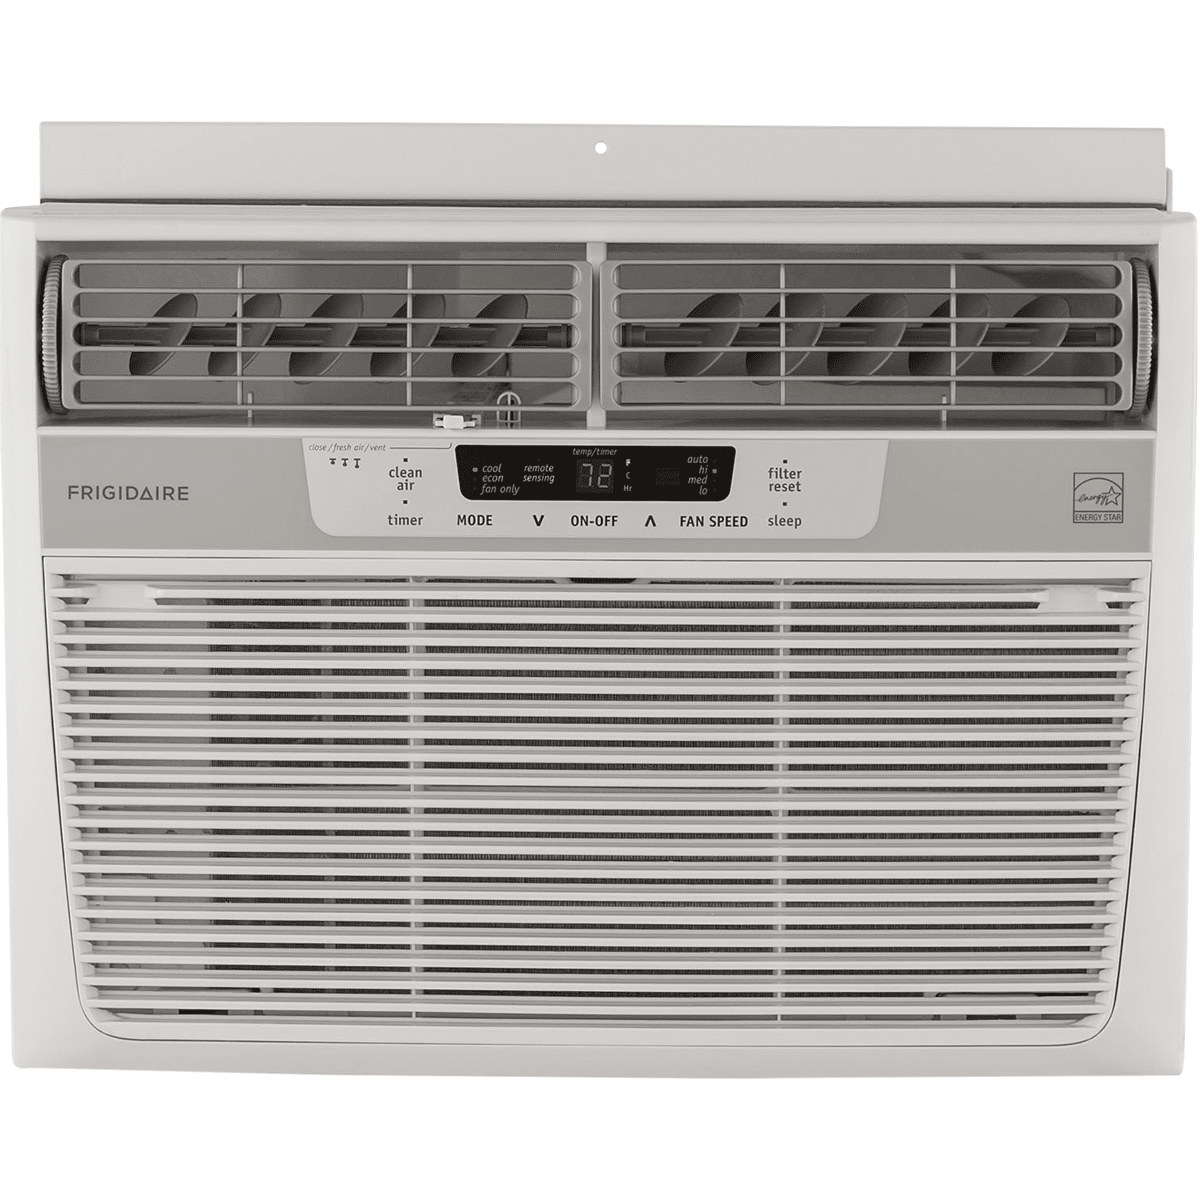 Frigidaire FFRE1033S1 10,000 BTU Window-Mounted Air Conditioner